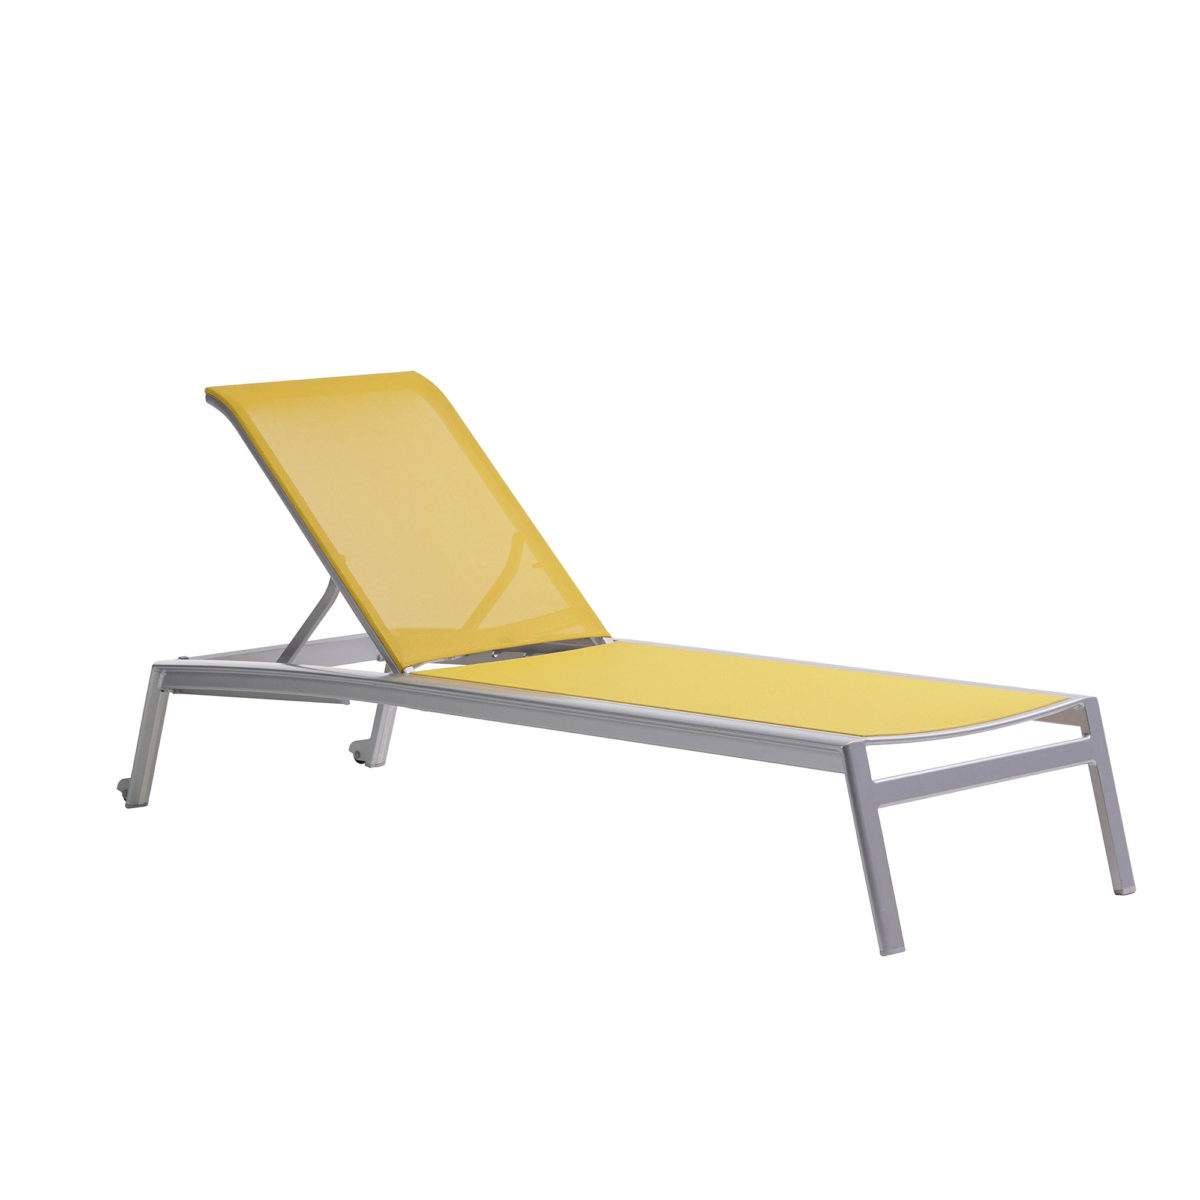 The Ratana Lyon adjustable lounger in solar yellow.